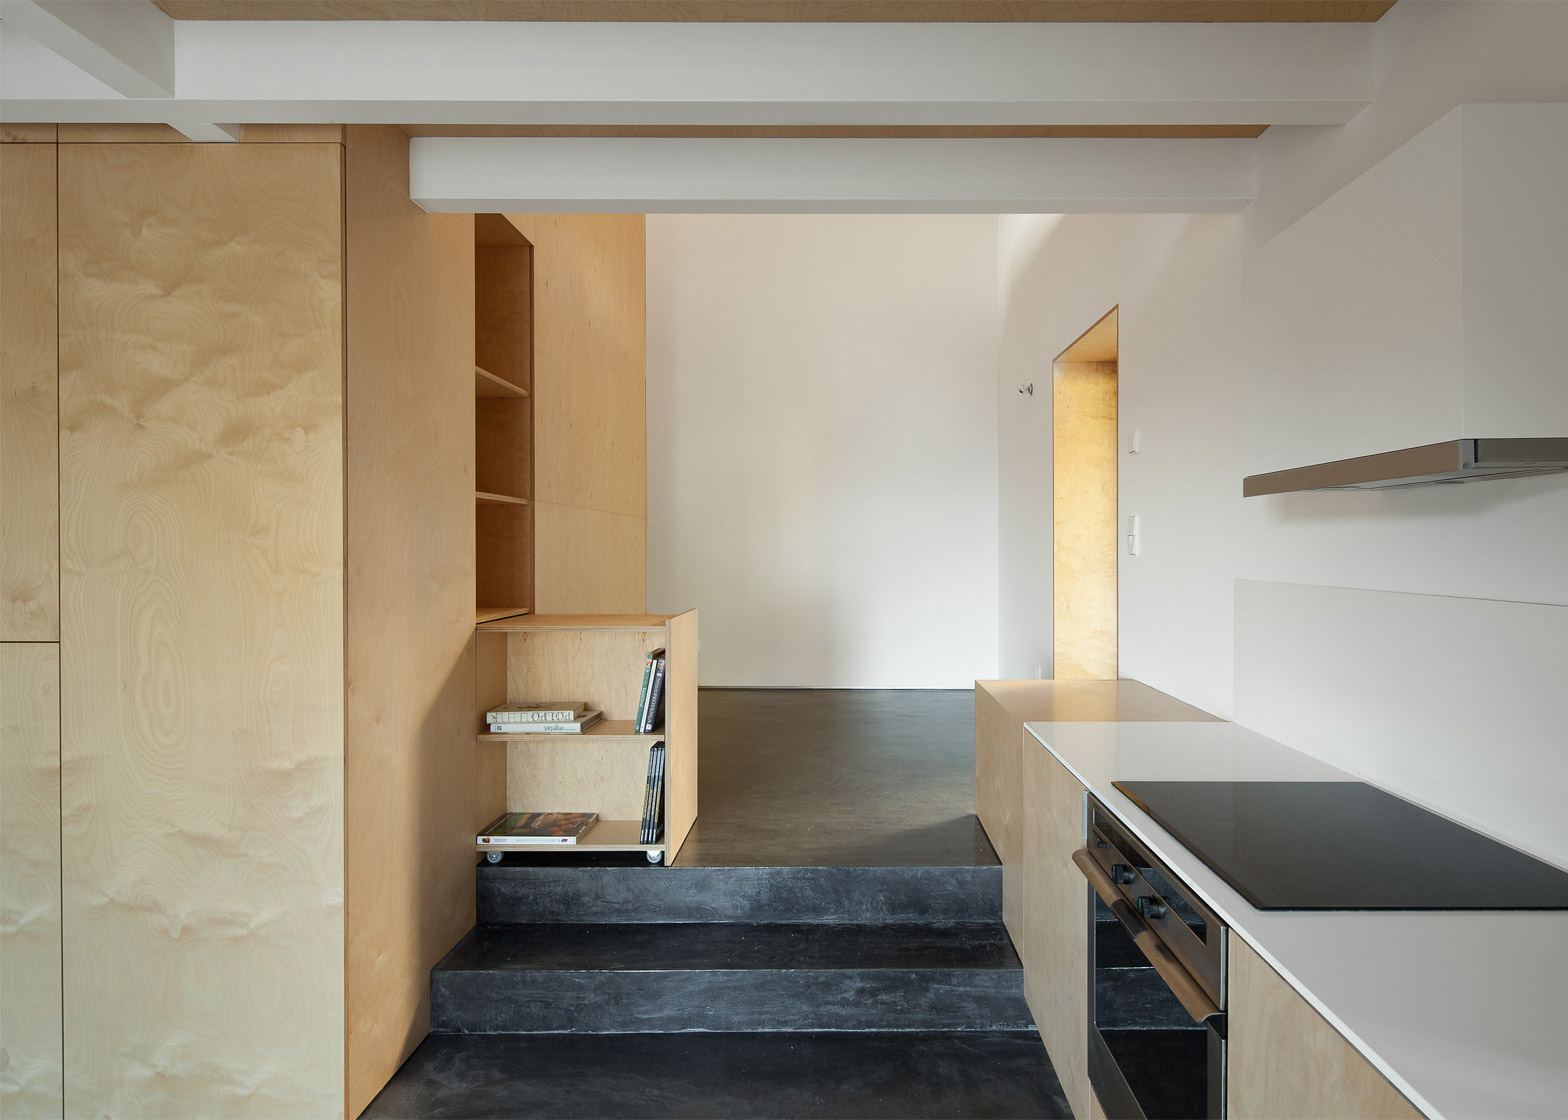 Apartment Renovation Ideas Birch Plywood Was Used To This Limited Budget Renovation